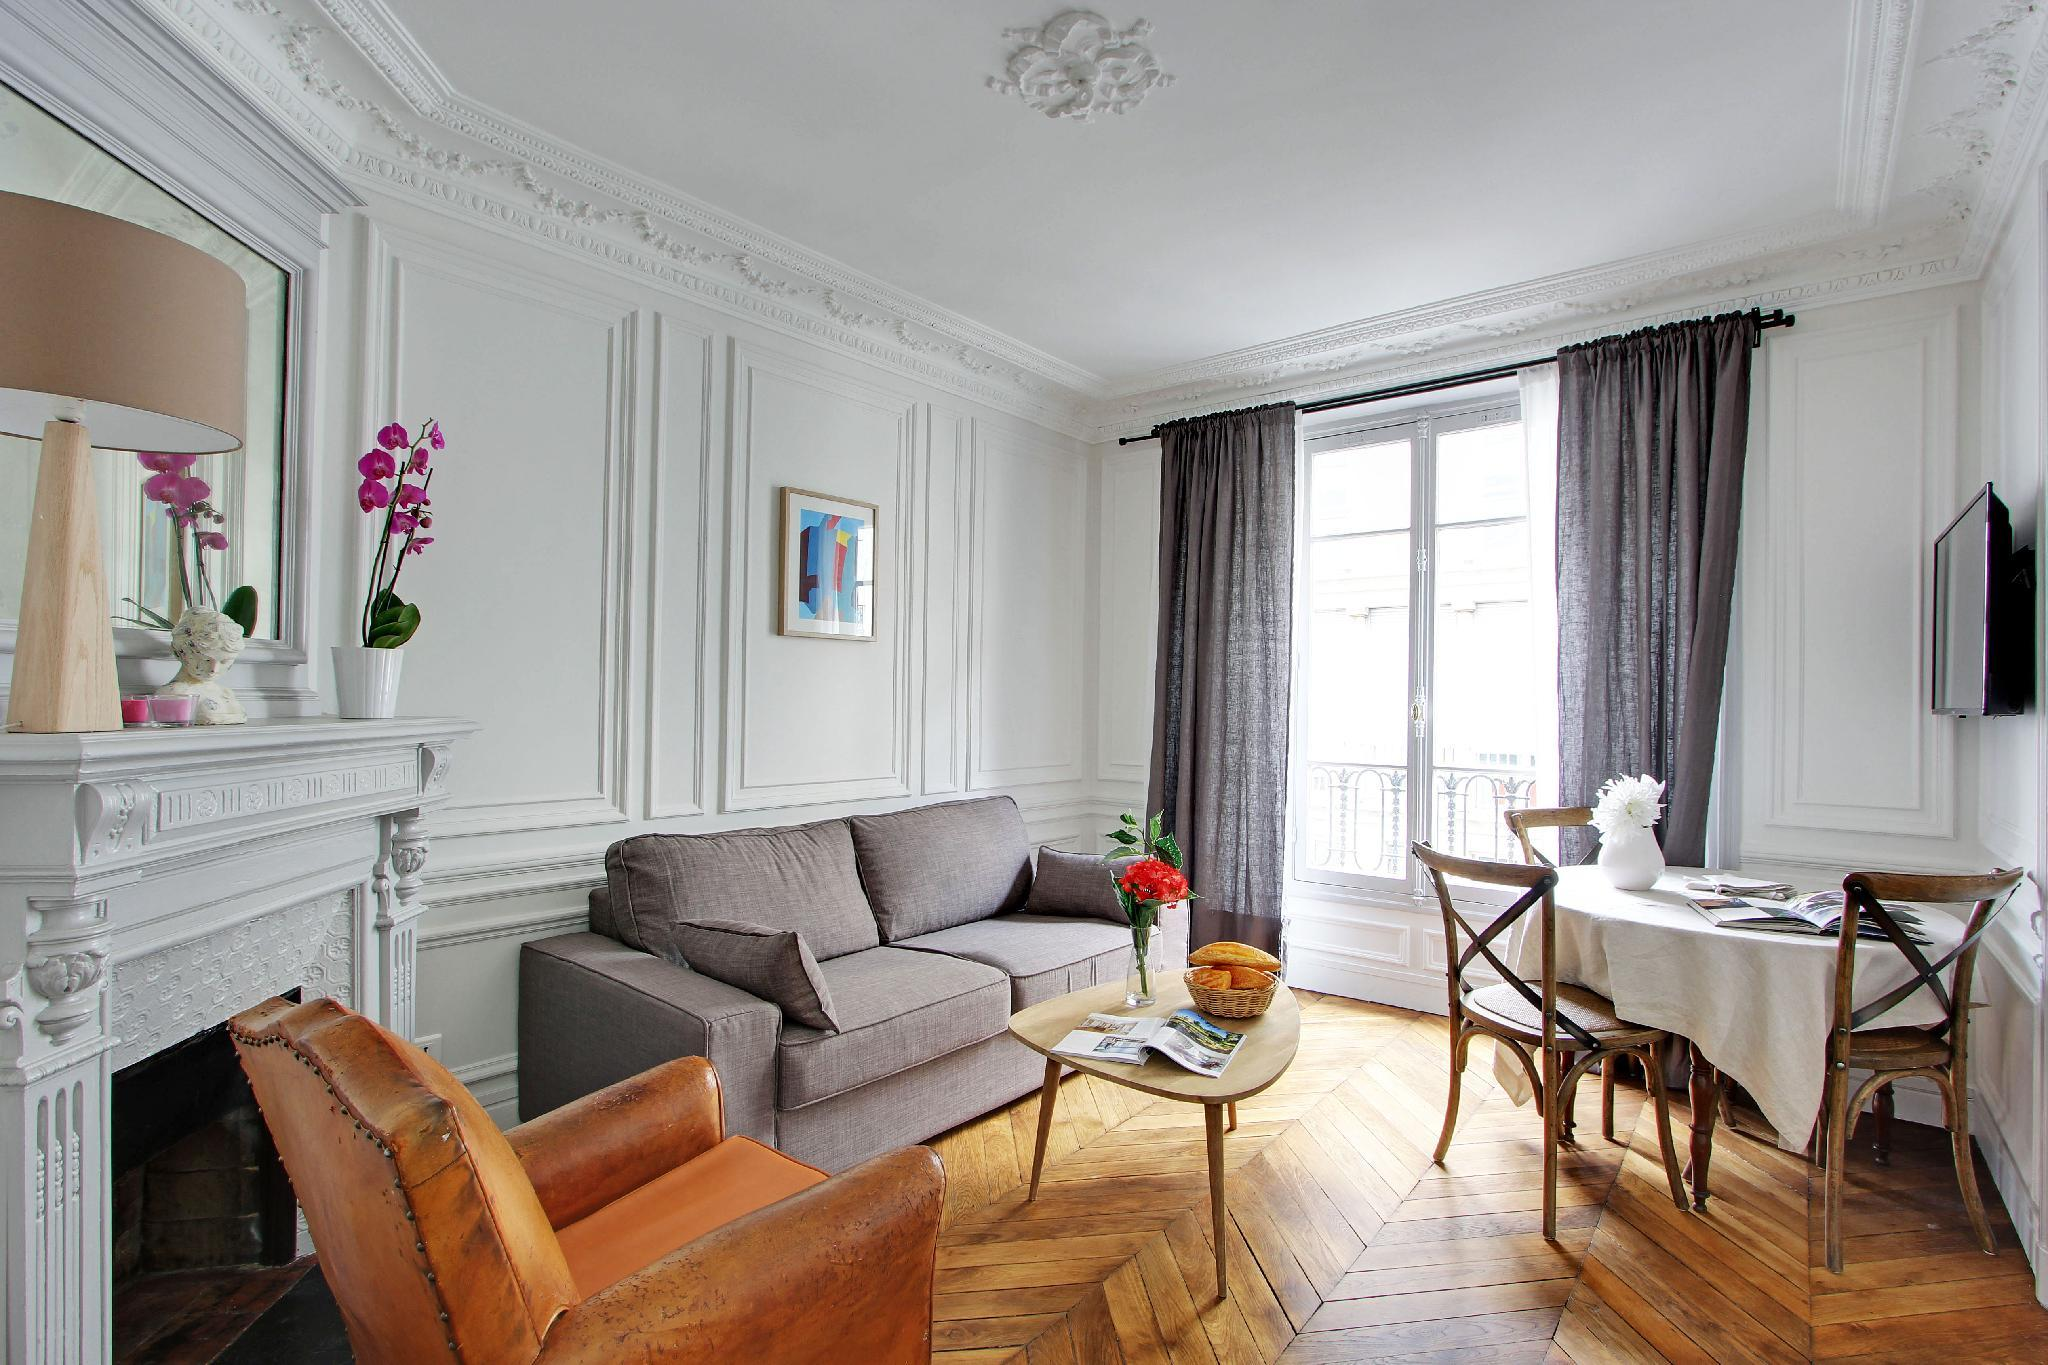 109125 - Authentic Parisian apartment for 3 people near Pigalle and Montmartre